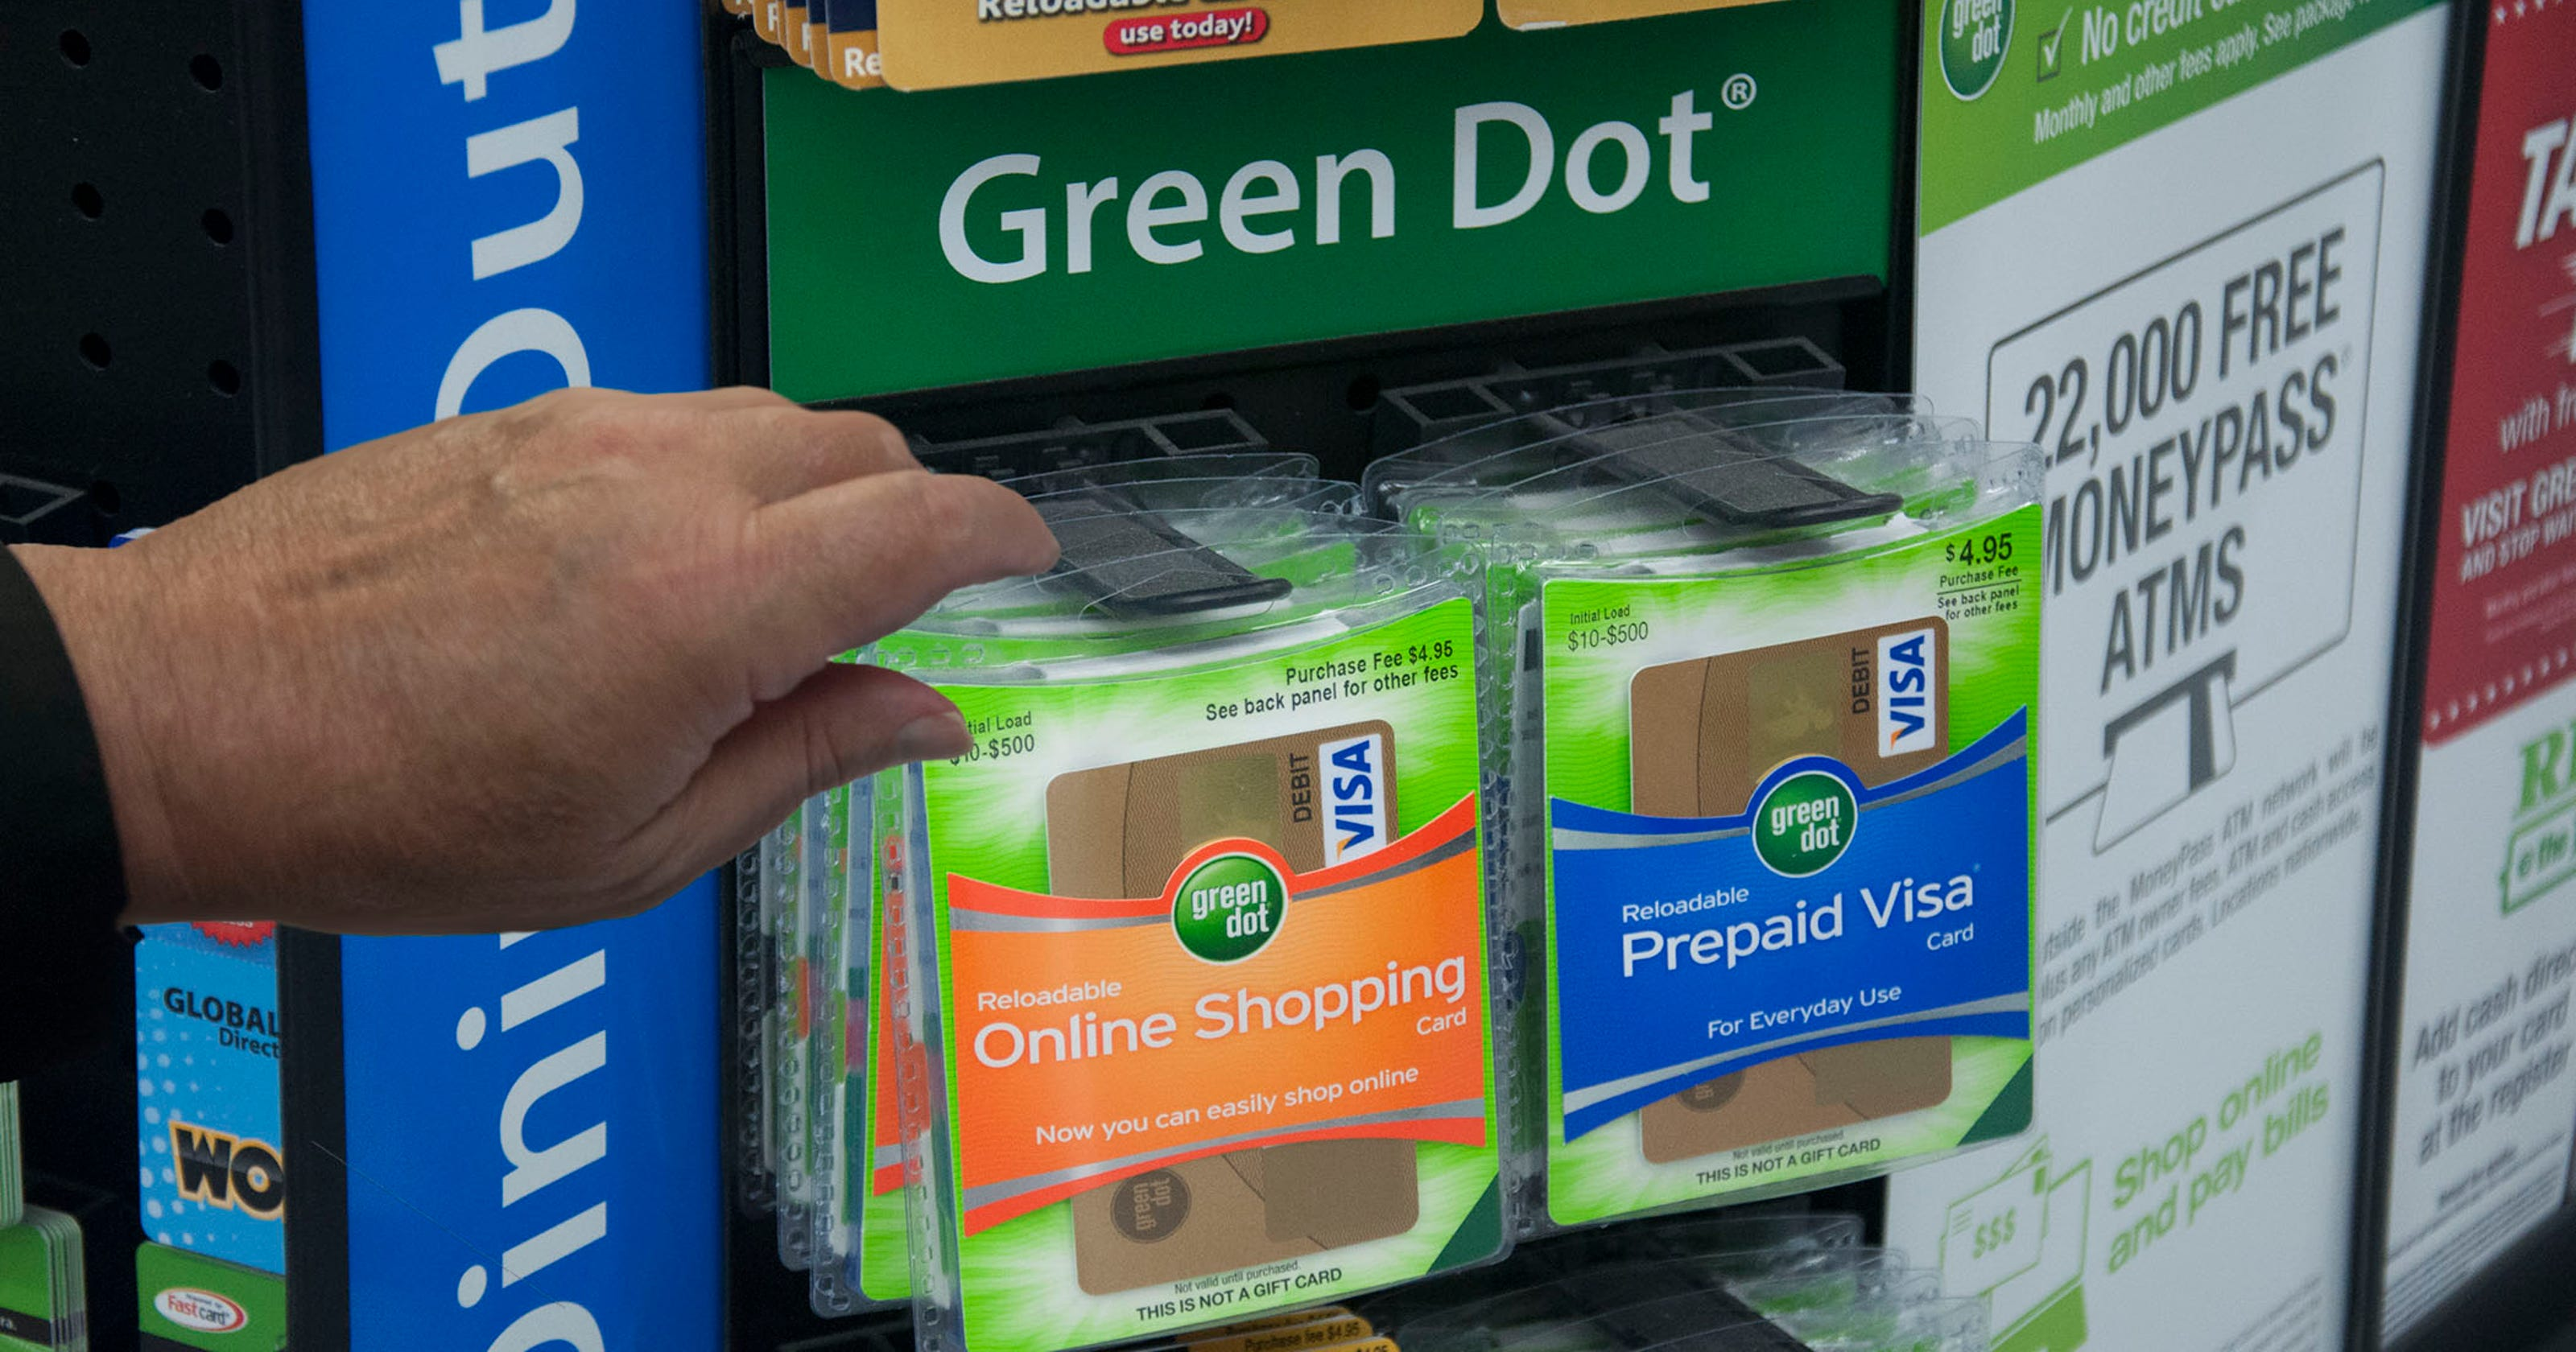 sheriff warns residents about green dot card scam - Green Dot Visa Debit Card